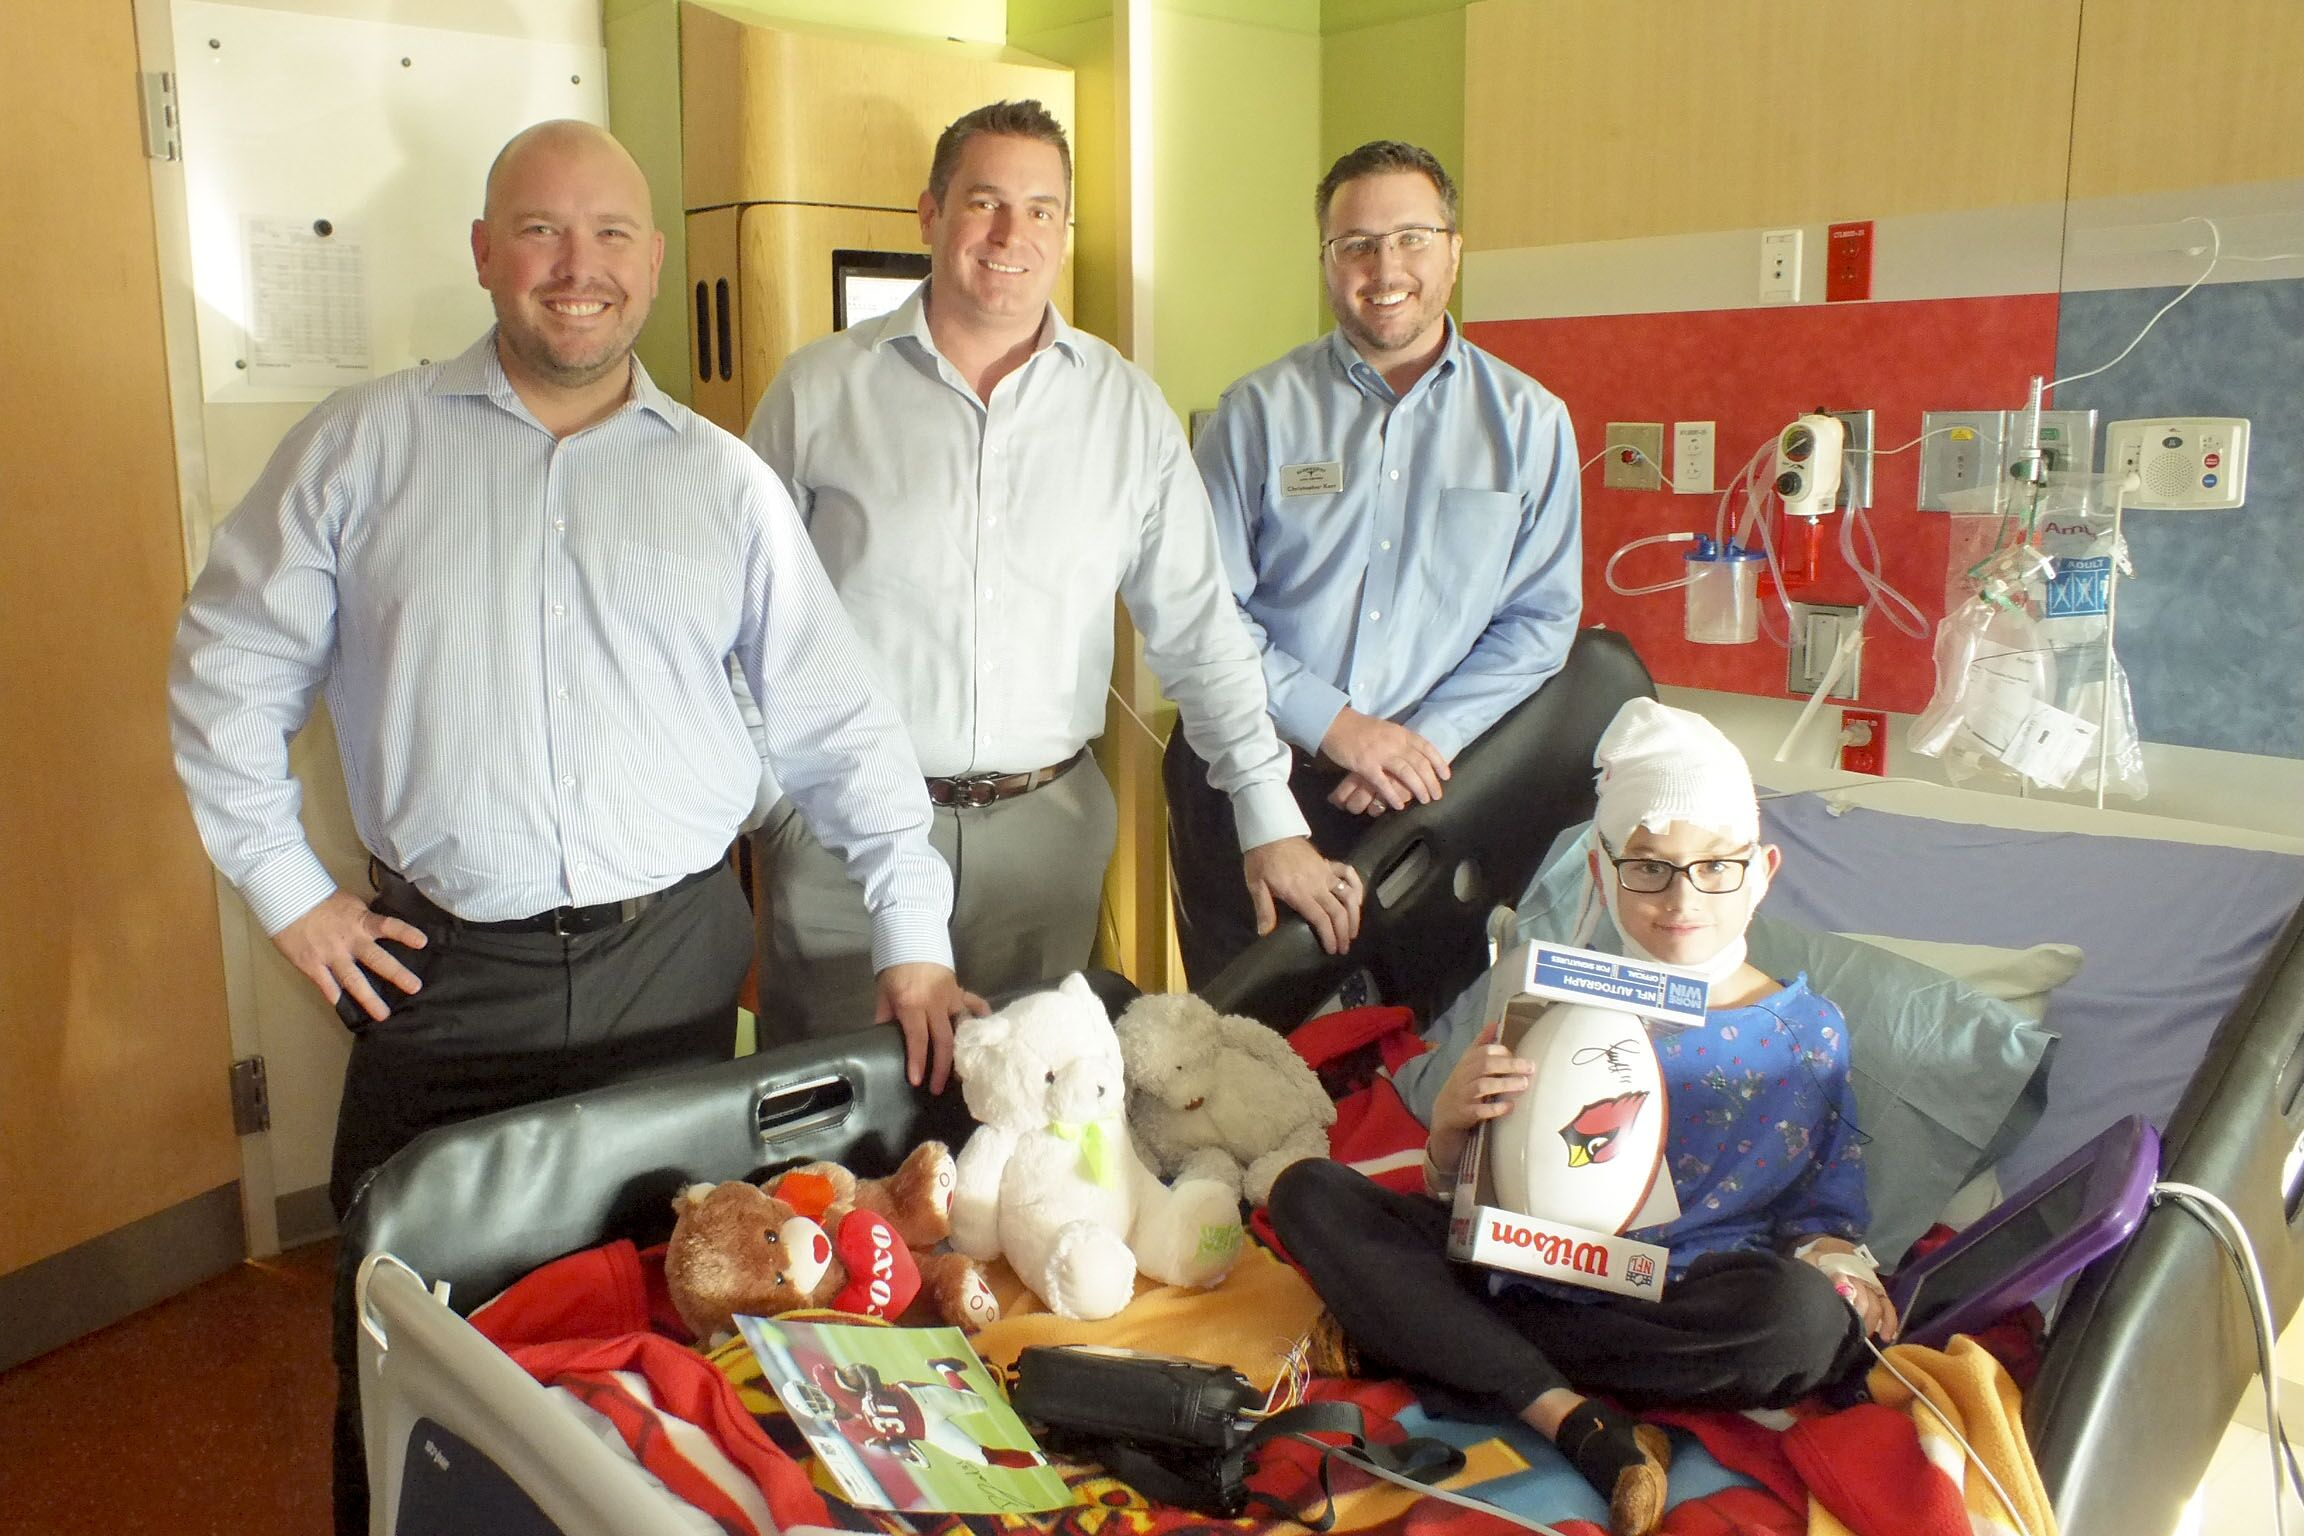 Adam (Earnhardt Hyundai GM), Peter (Rodeo Hyundai GM), and Chris (Marketing Director) at Phoenix Children's Hospital